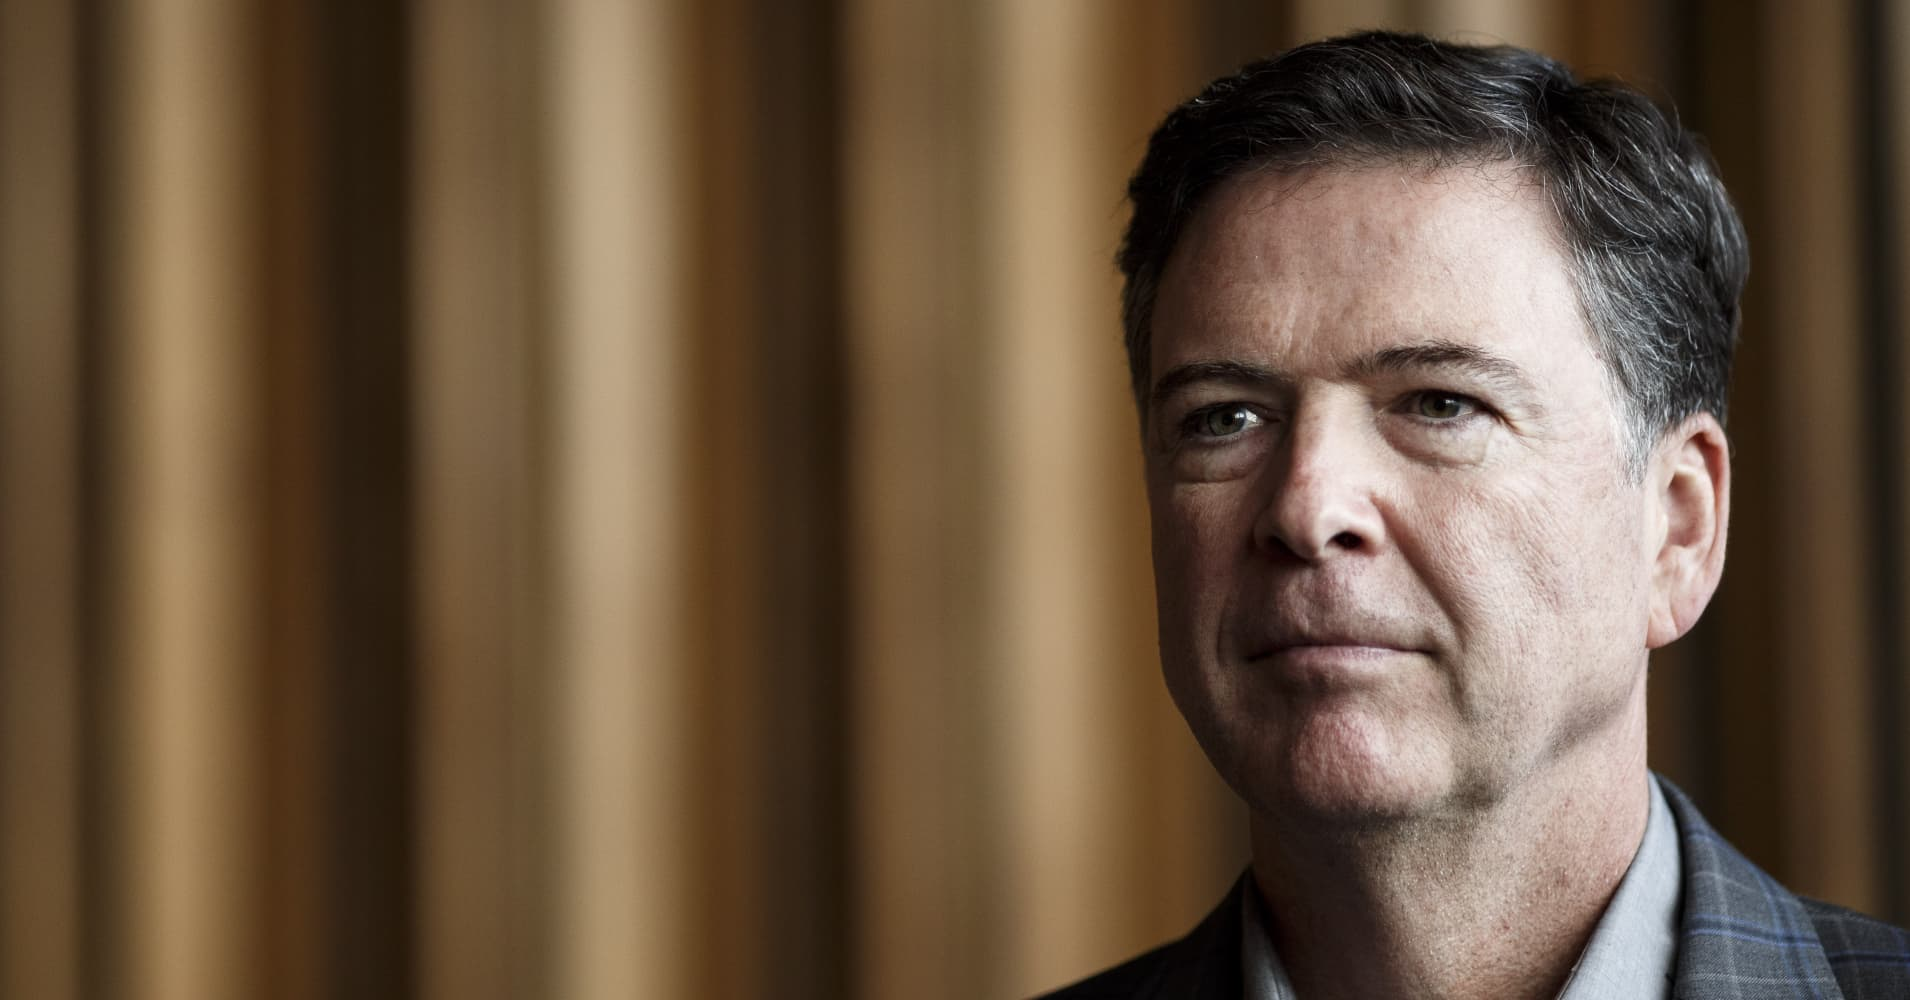 Ex-FBI chief James Comey urges Americans to vote for Democrats in midterm elections